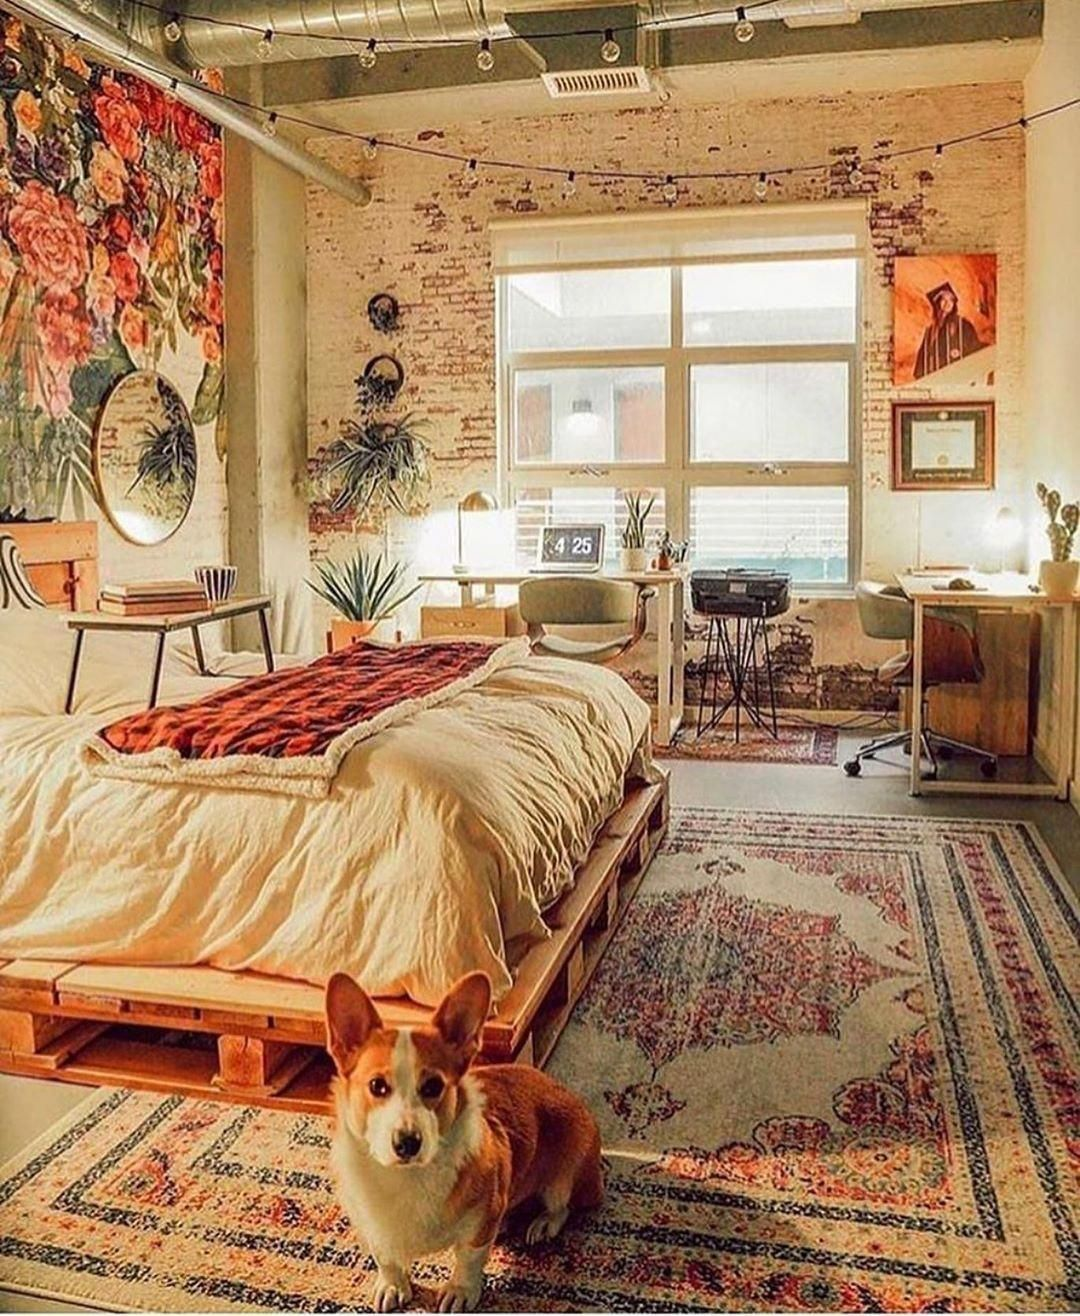 Awesome Bohemian Bedroom Designs and Decor #bohemianbedroom #bohemianbedrooms Awesome Bohemian Bedroom Designs and Decor #bohemianbedroom #bohemianbedrooms